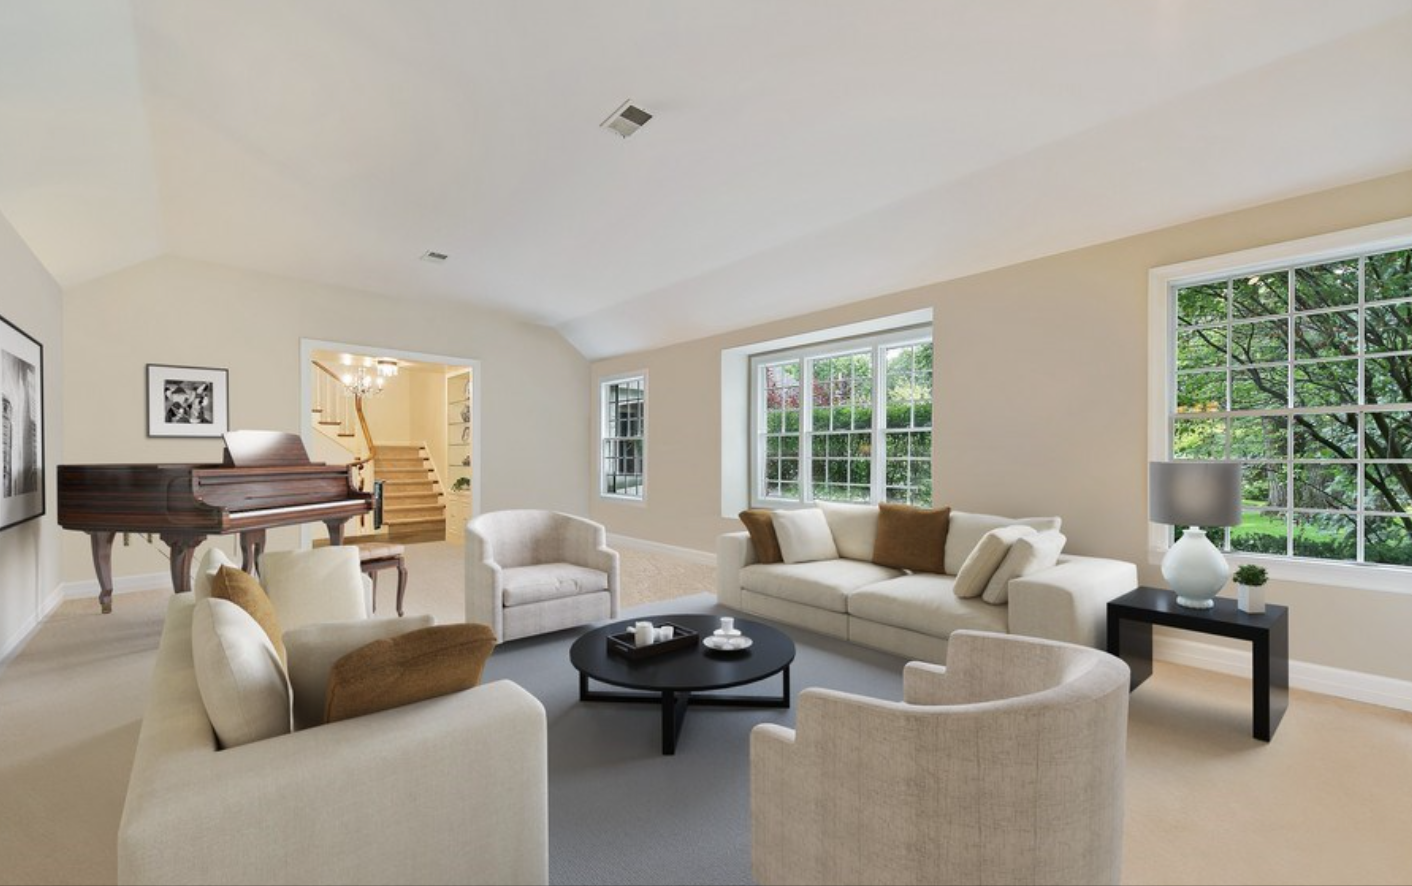 Virtual Staging Transforms Cold, Vacant Spaces Into Warm, Welcoming Homes